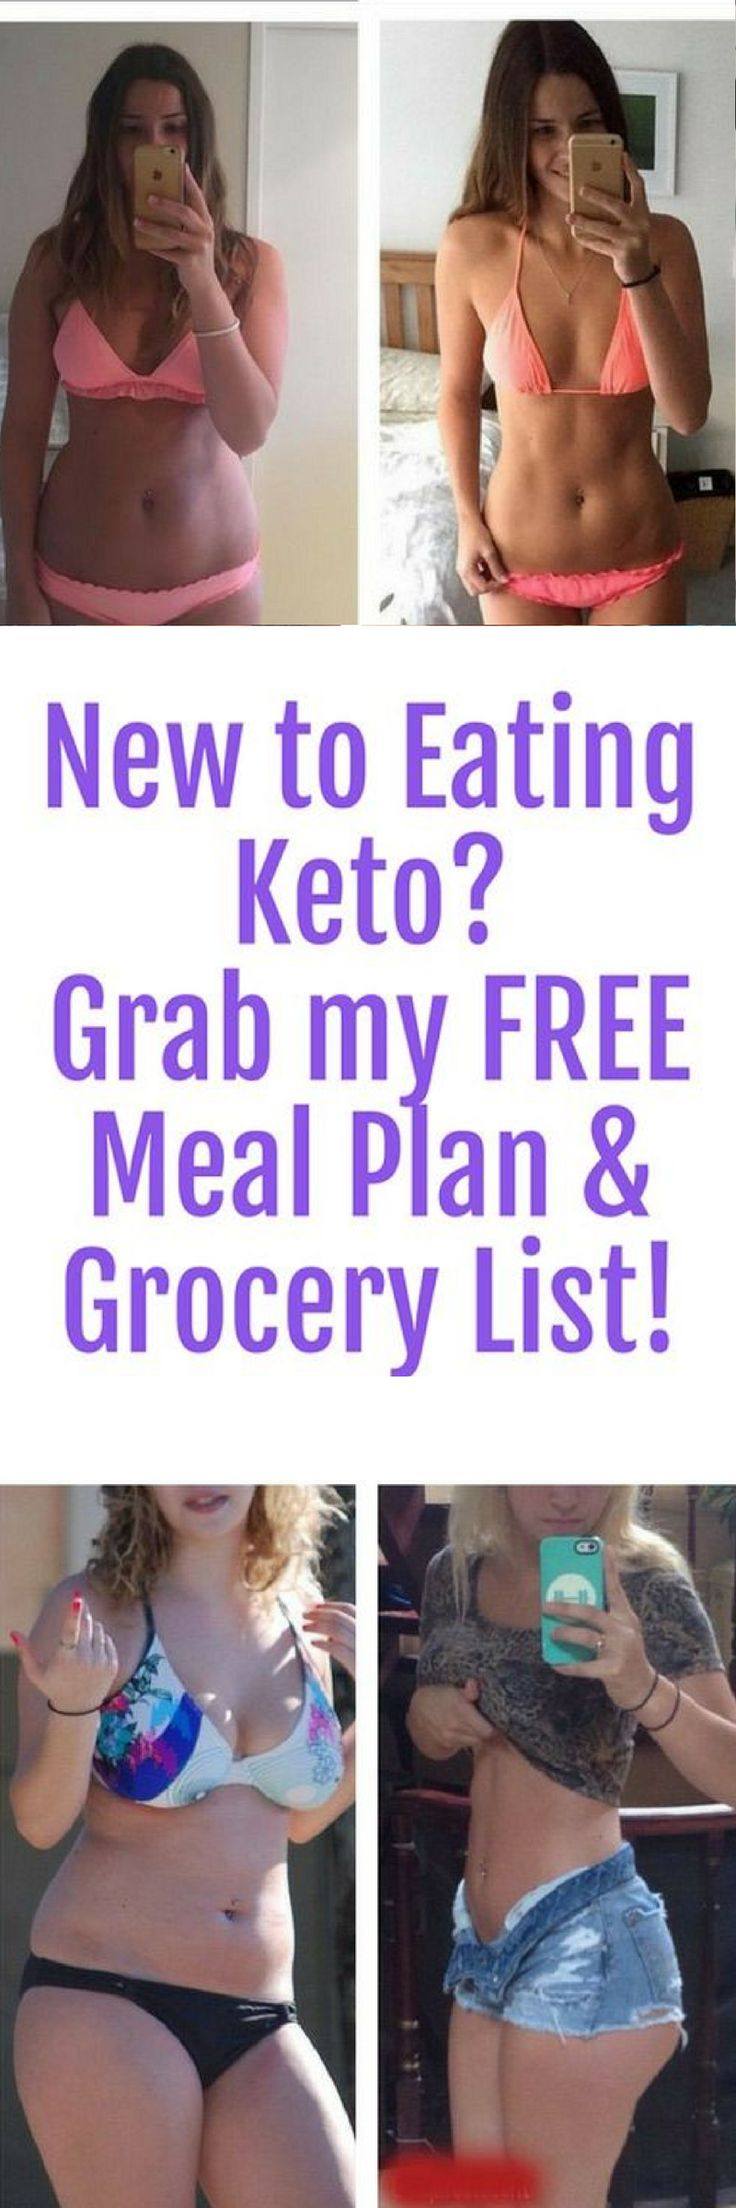 Lose weight fast and easy for summer with #keto #ketodiet #loseweightfast #summerbody #bikinibody